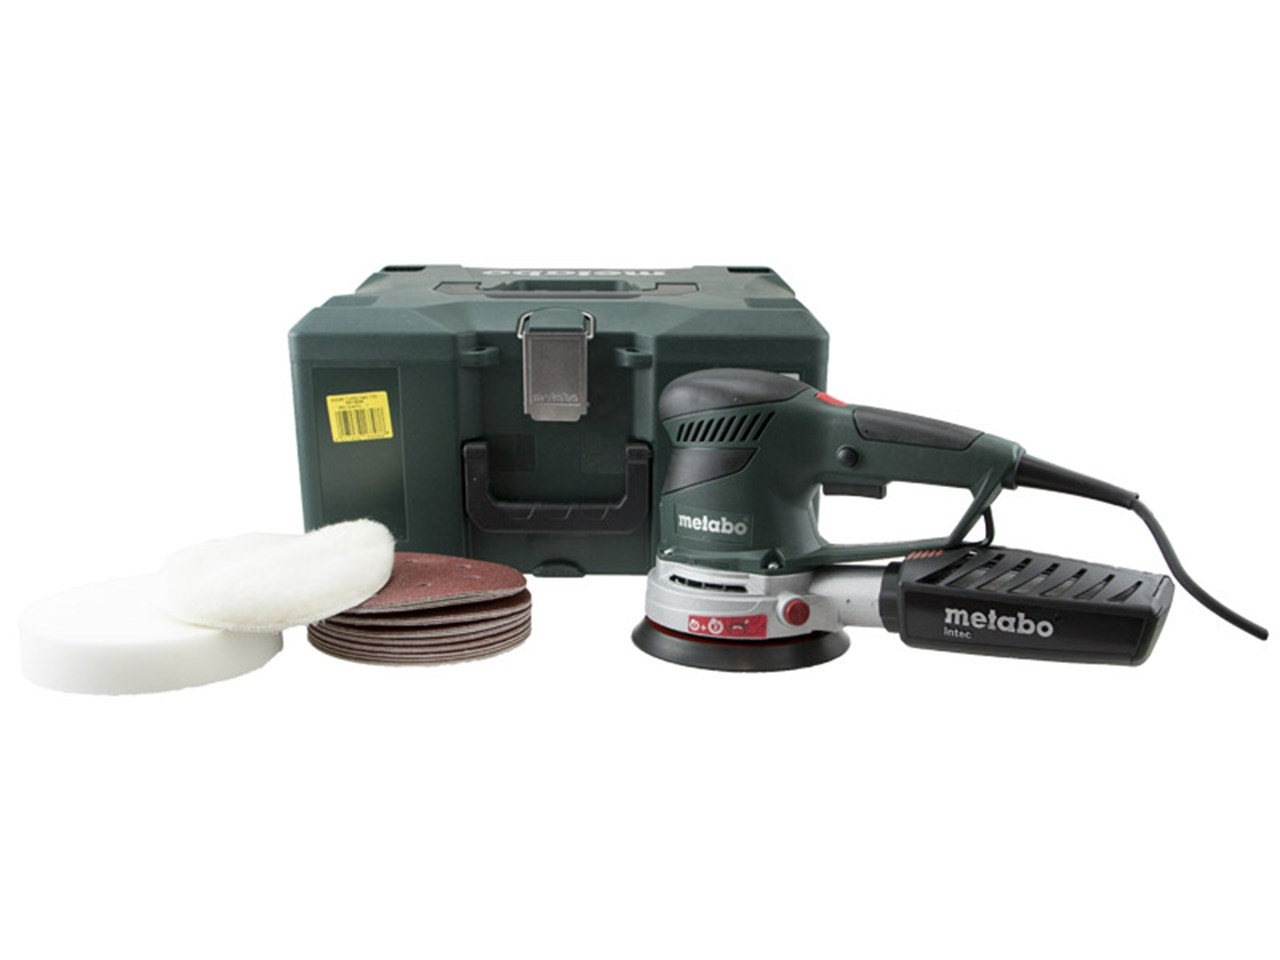 metabo sxe450 propack 240v turbotec 150mm sander 240v in metaloc green case. Black Bedroom Furniture Sets. Home Design Ideas